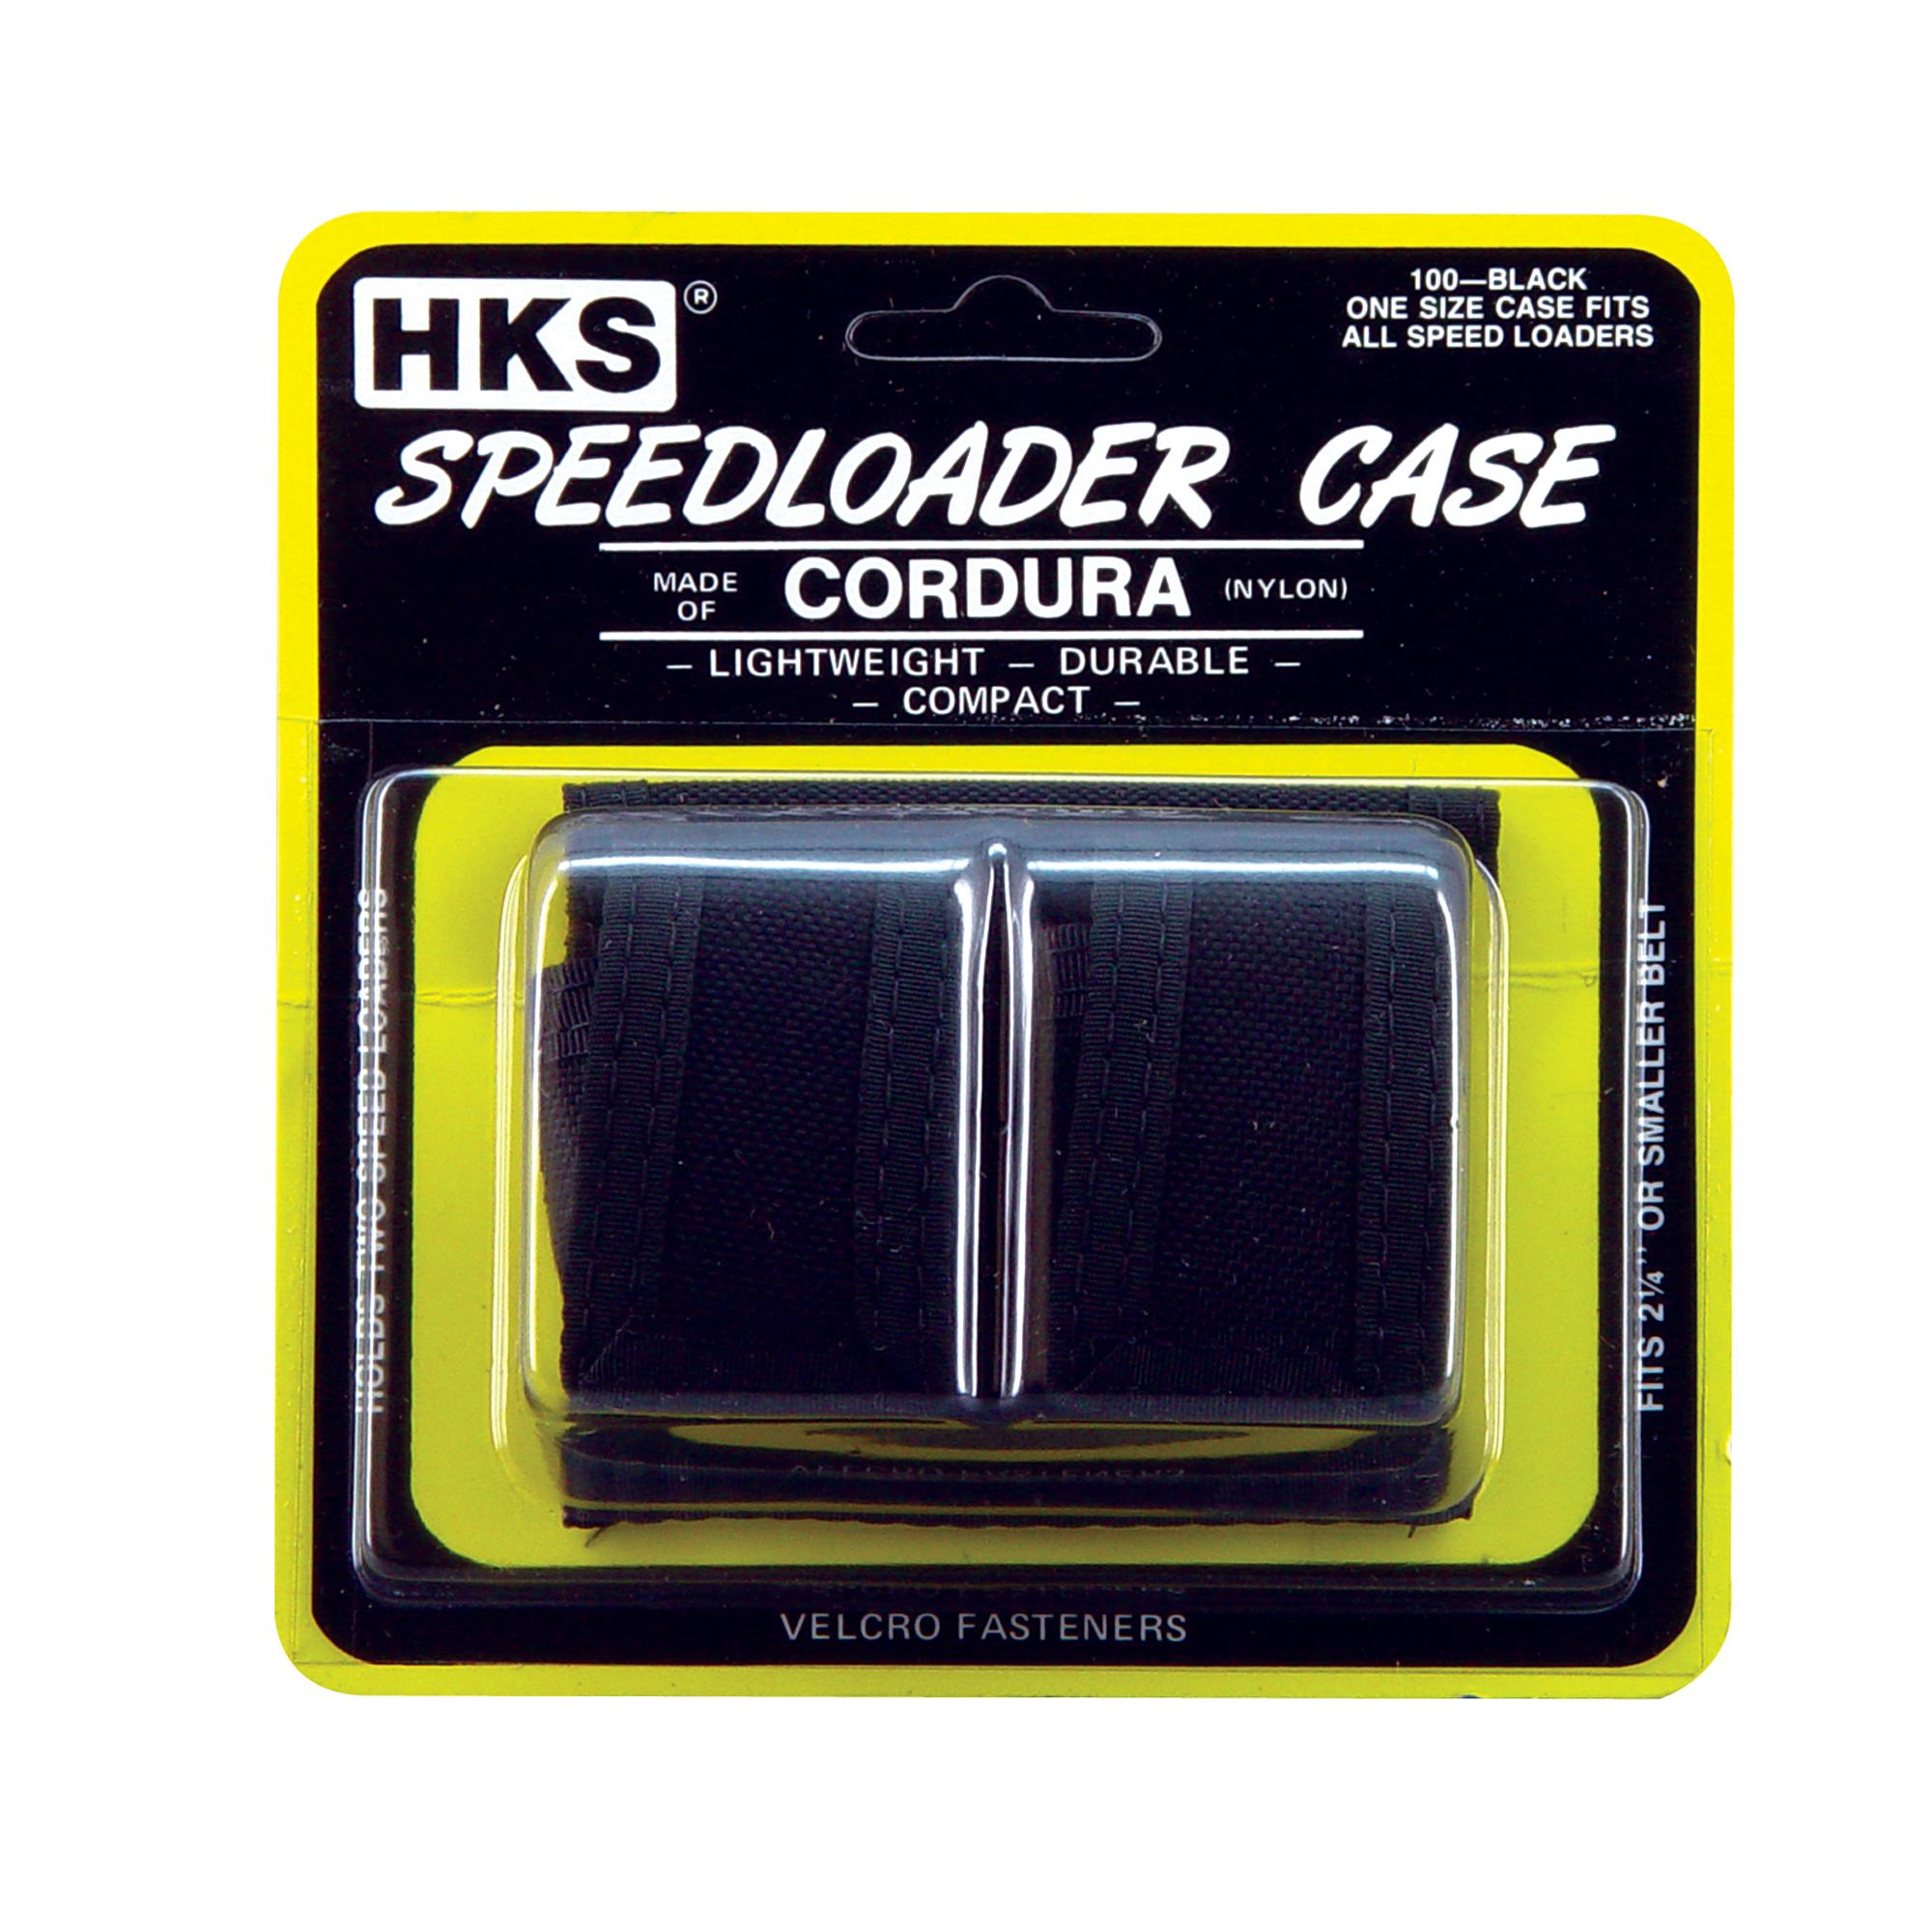 "These handy HKS Speedloader Pouches will hold 2 HKS Revolver Speedloaders. They will fit on any belt up to 2-1/4"" wide."